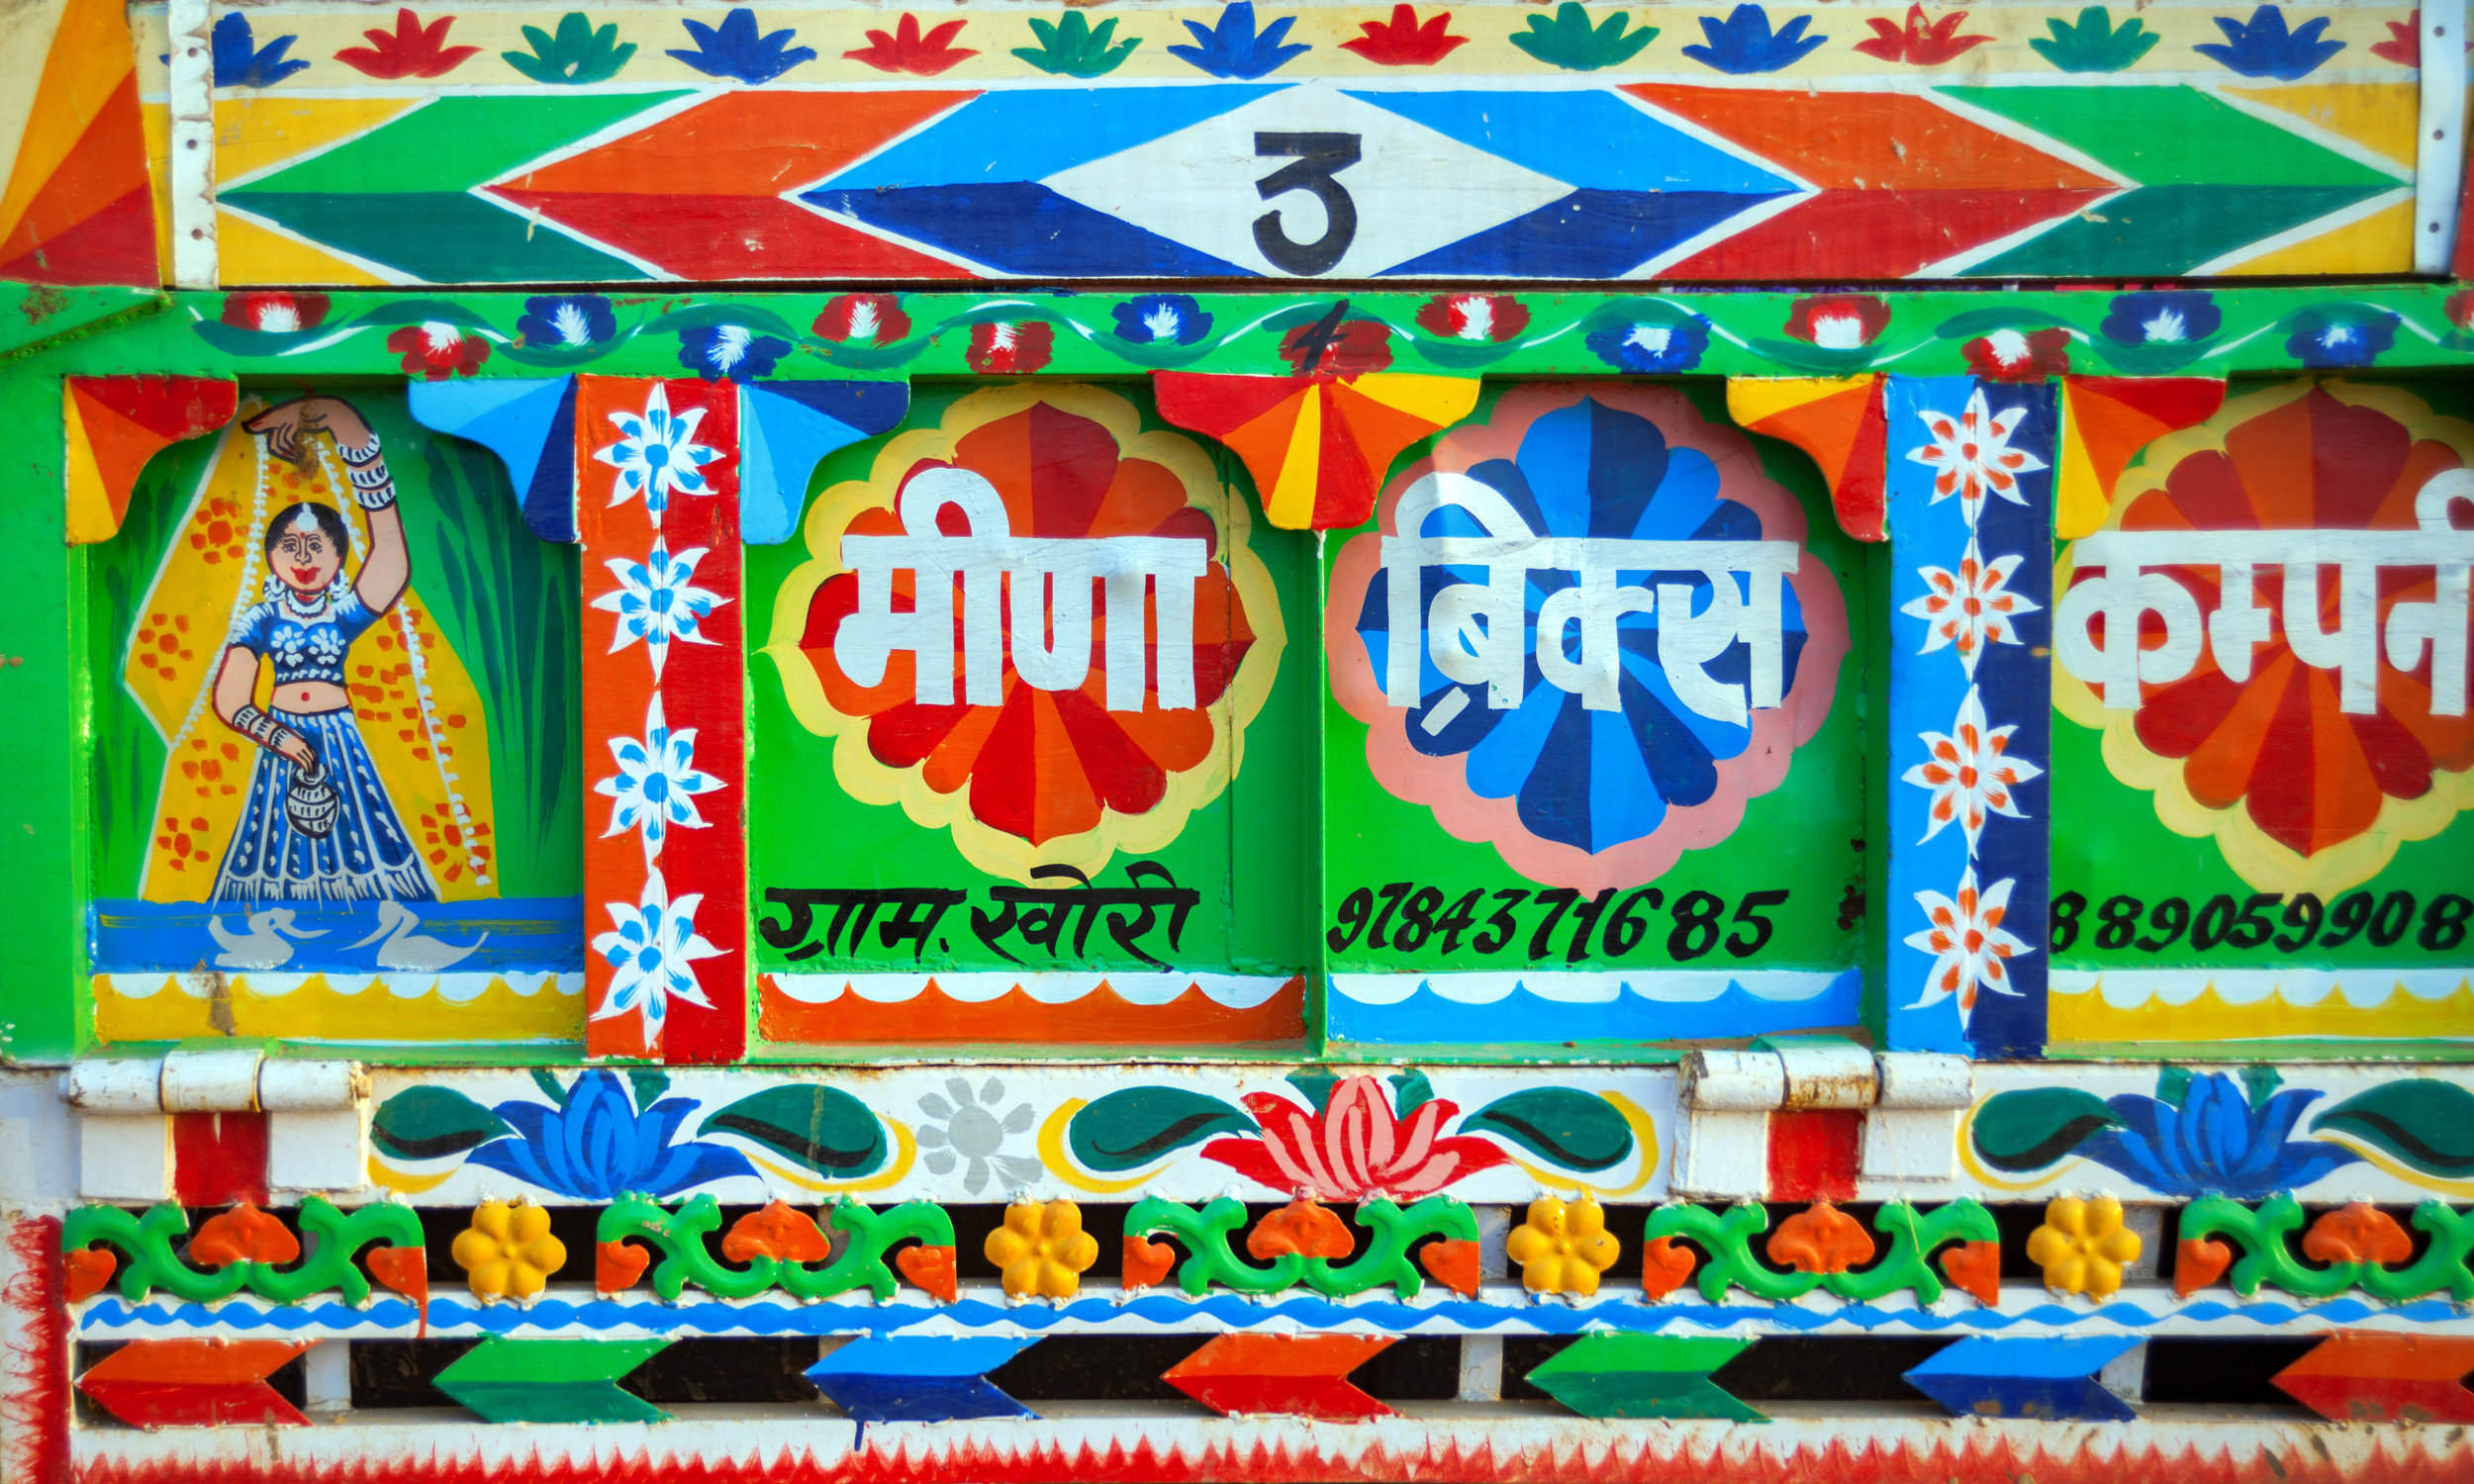 Colourful hand painted truck art